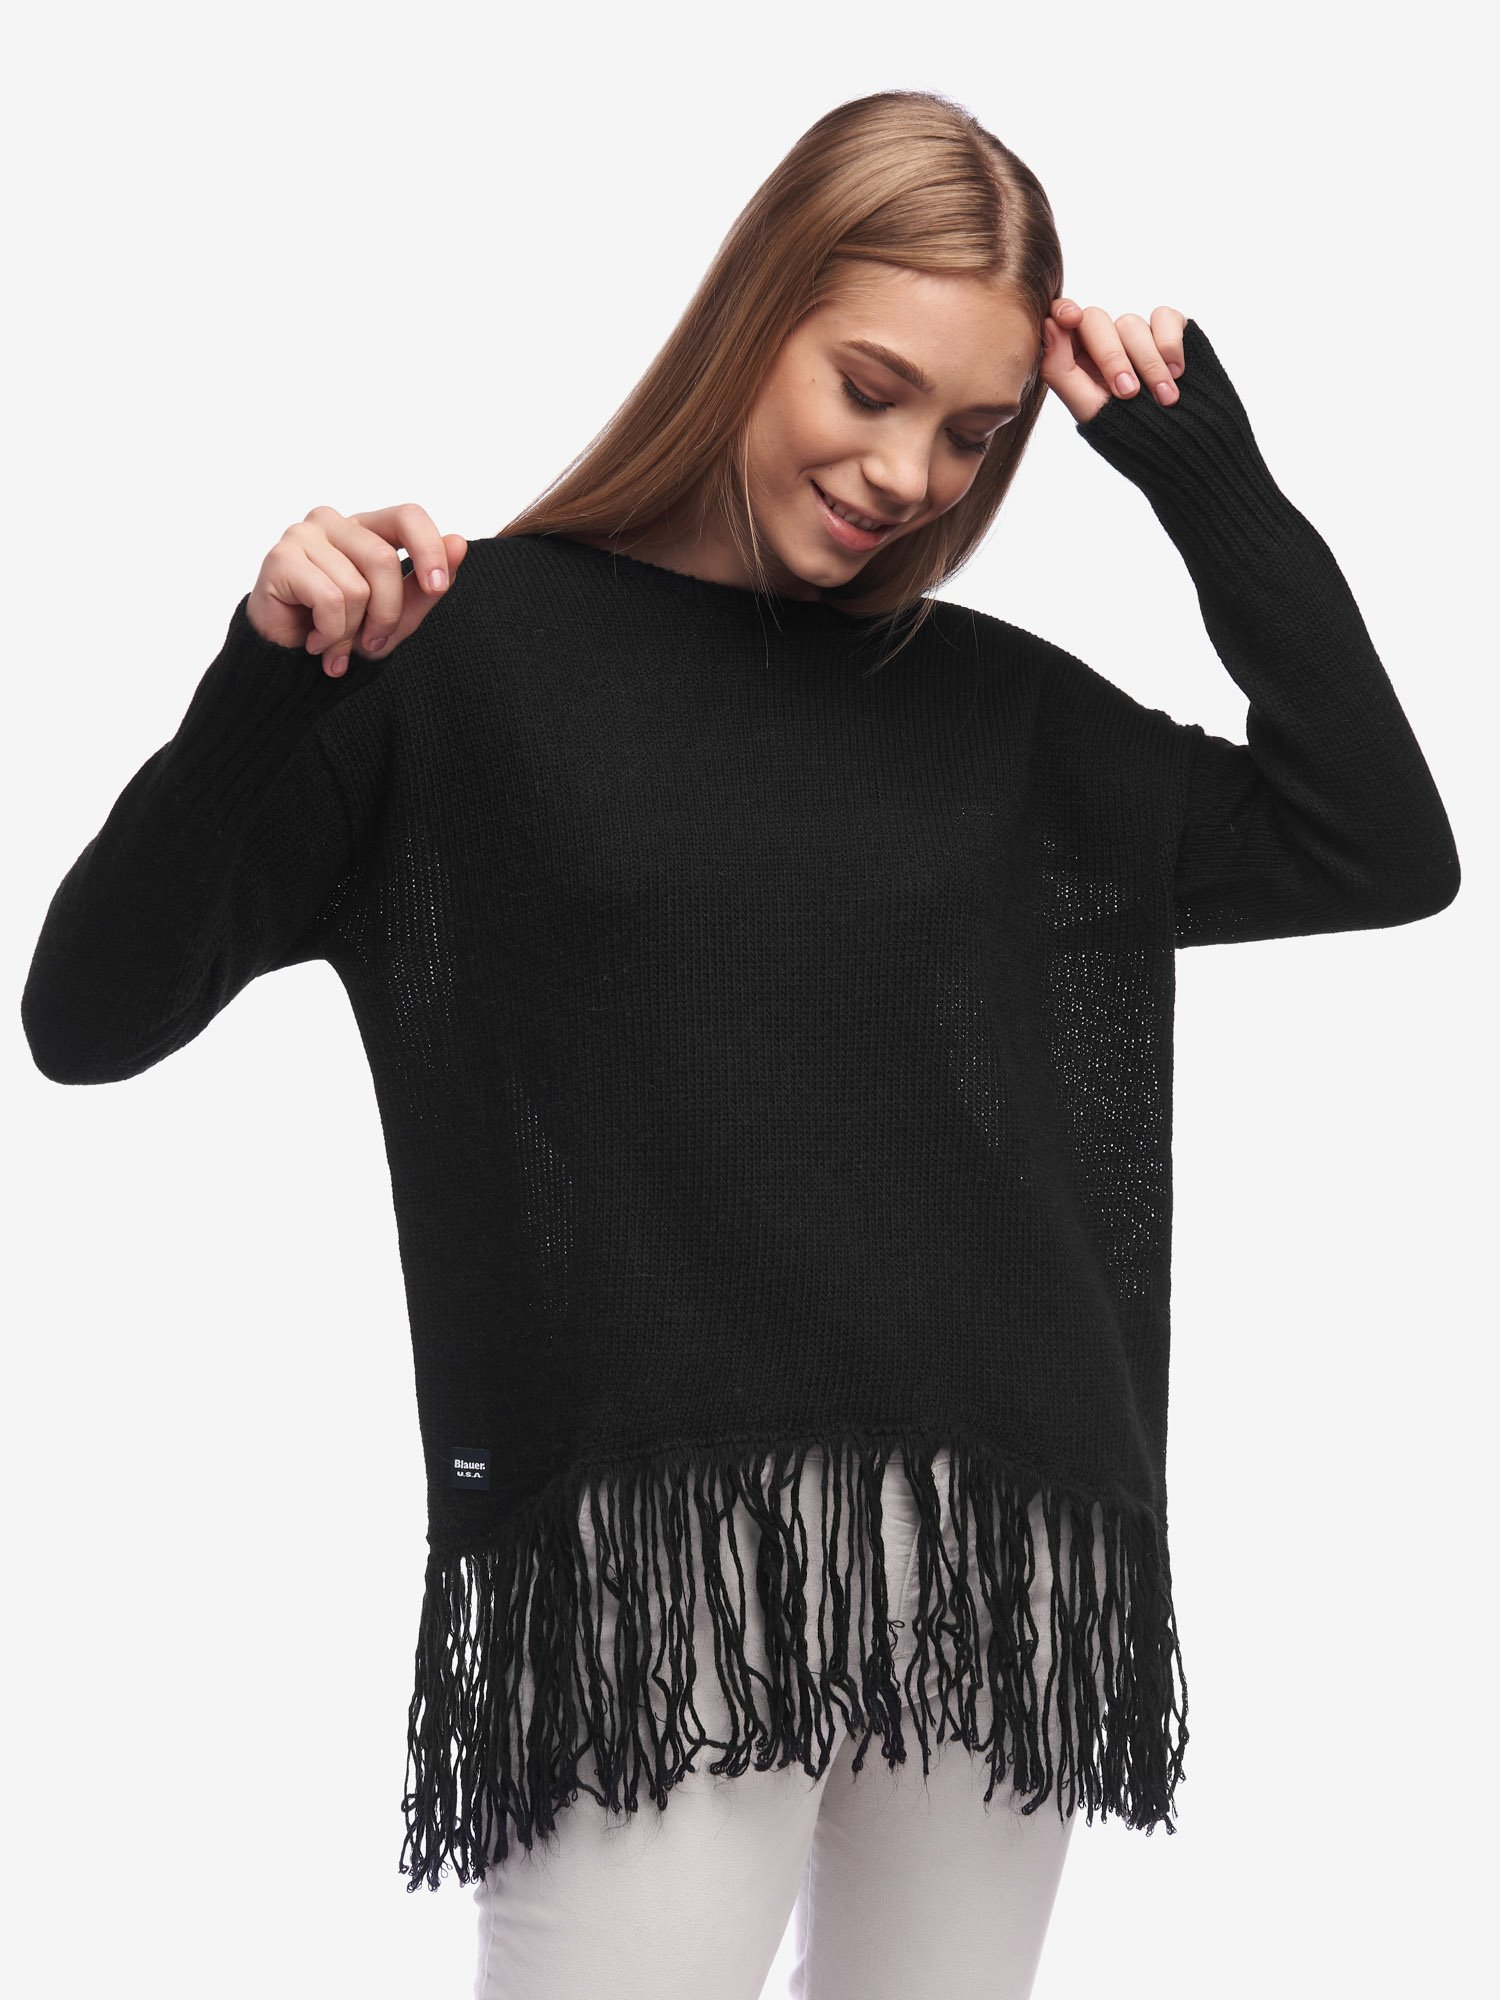 FRINGED SWEATER - Blauer